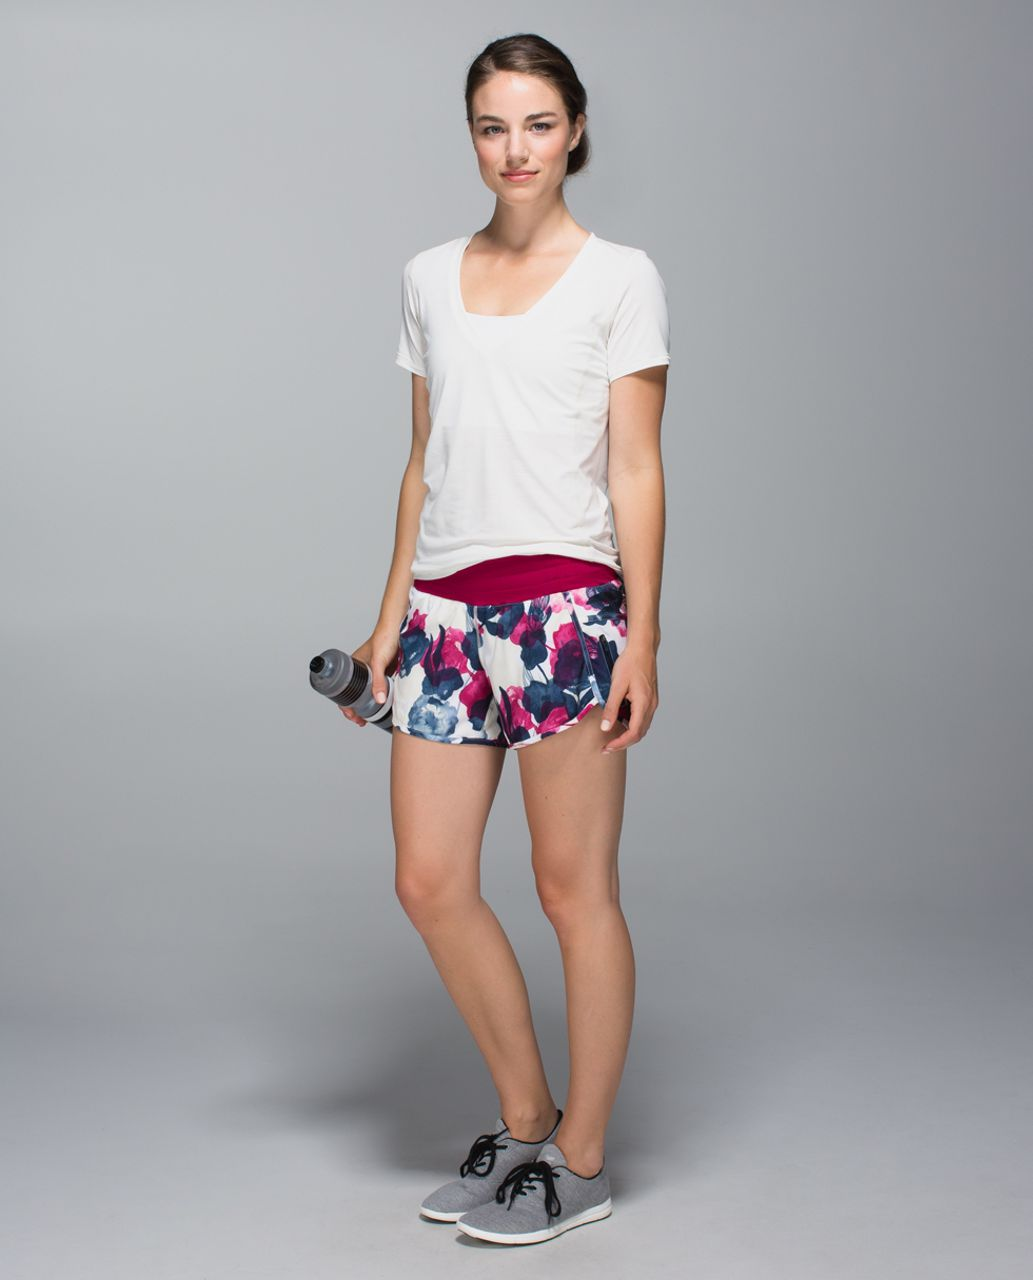 Lululemon Tracker Short II *4-way Stretch - Inky Floral Ghost Inkwell Bumble Berry / Bumble Berry